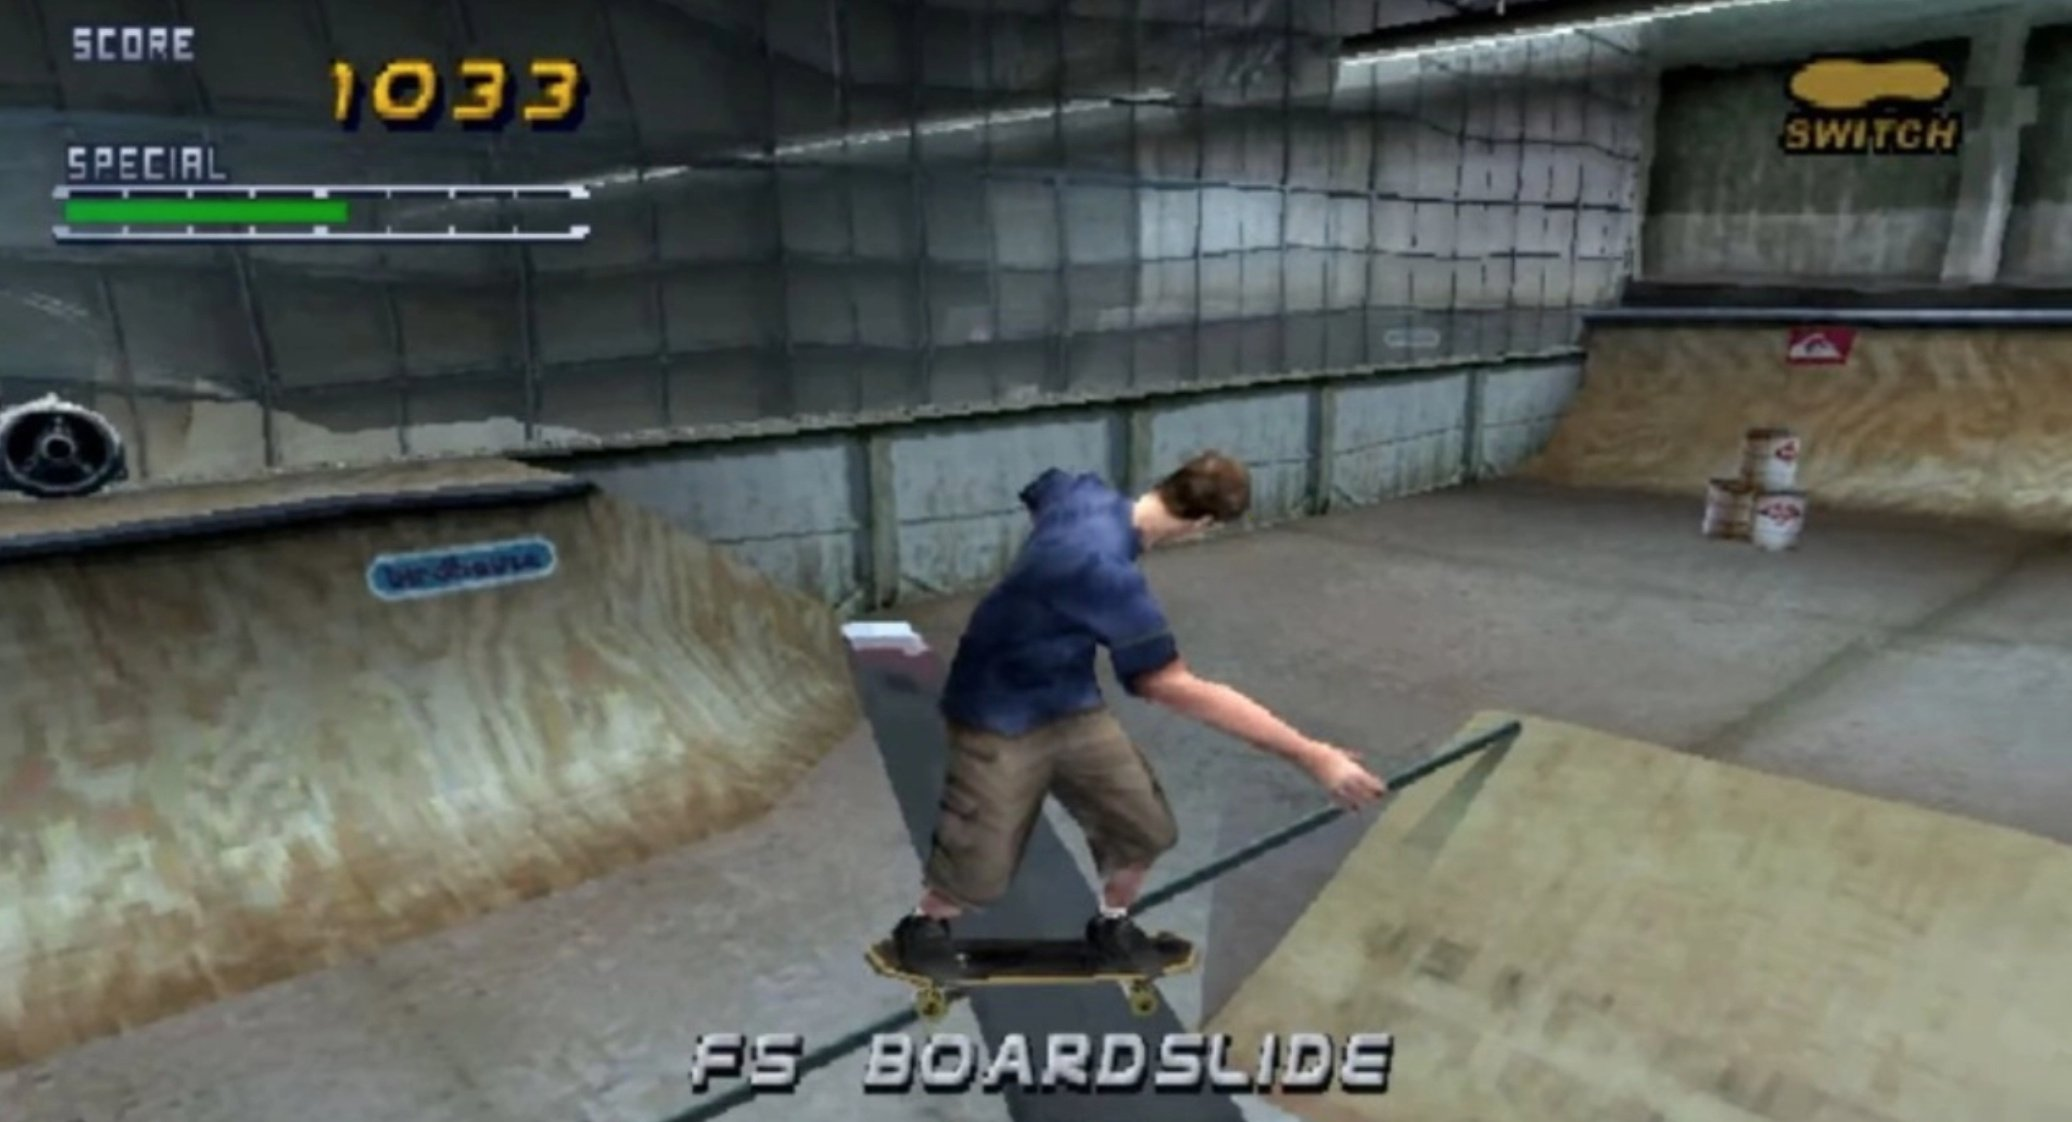 Tony Hawk S Pro Skater 1 And 2 Remasters Officially Revealed But They Re Skipping Switch Nintendo Life